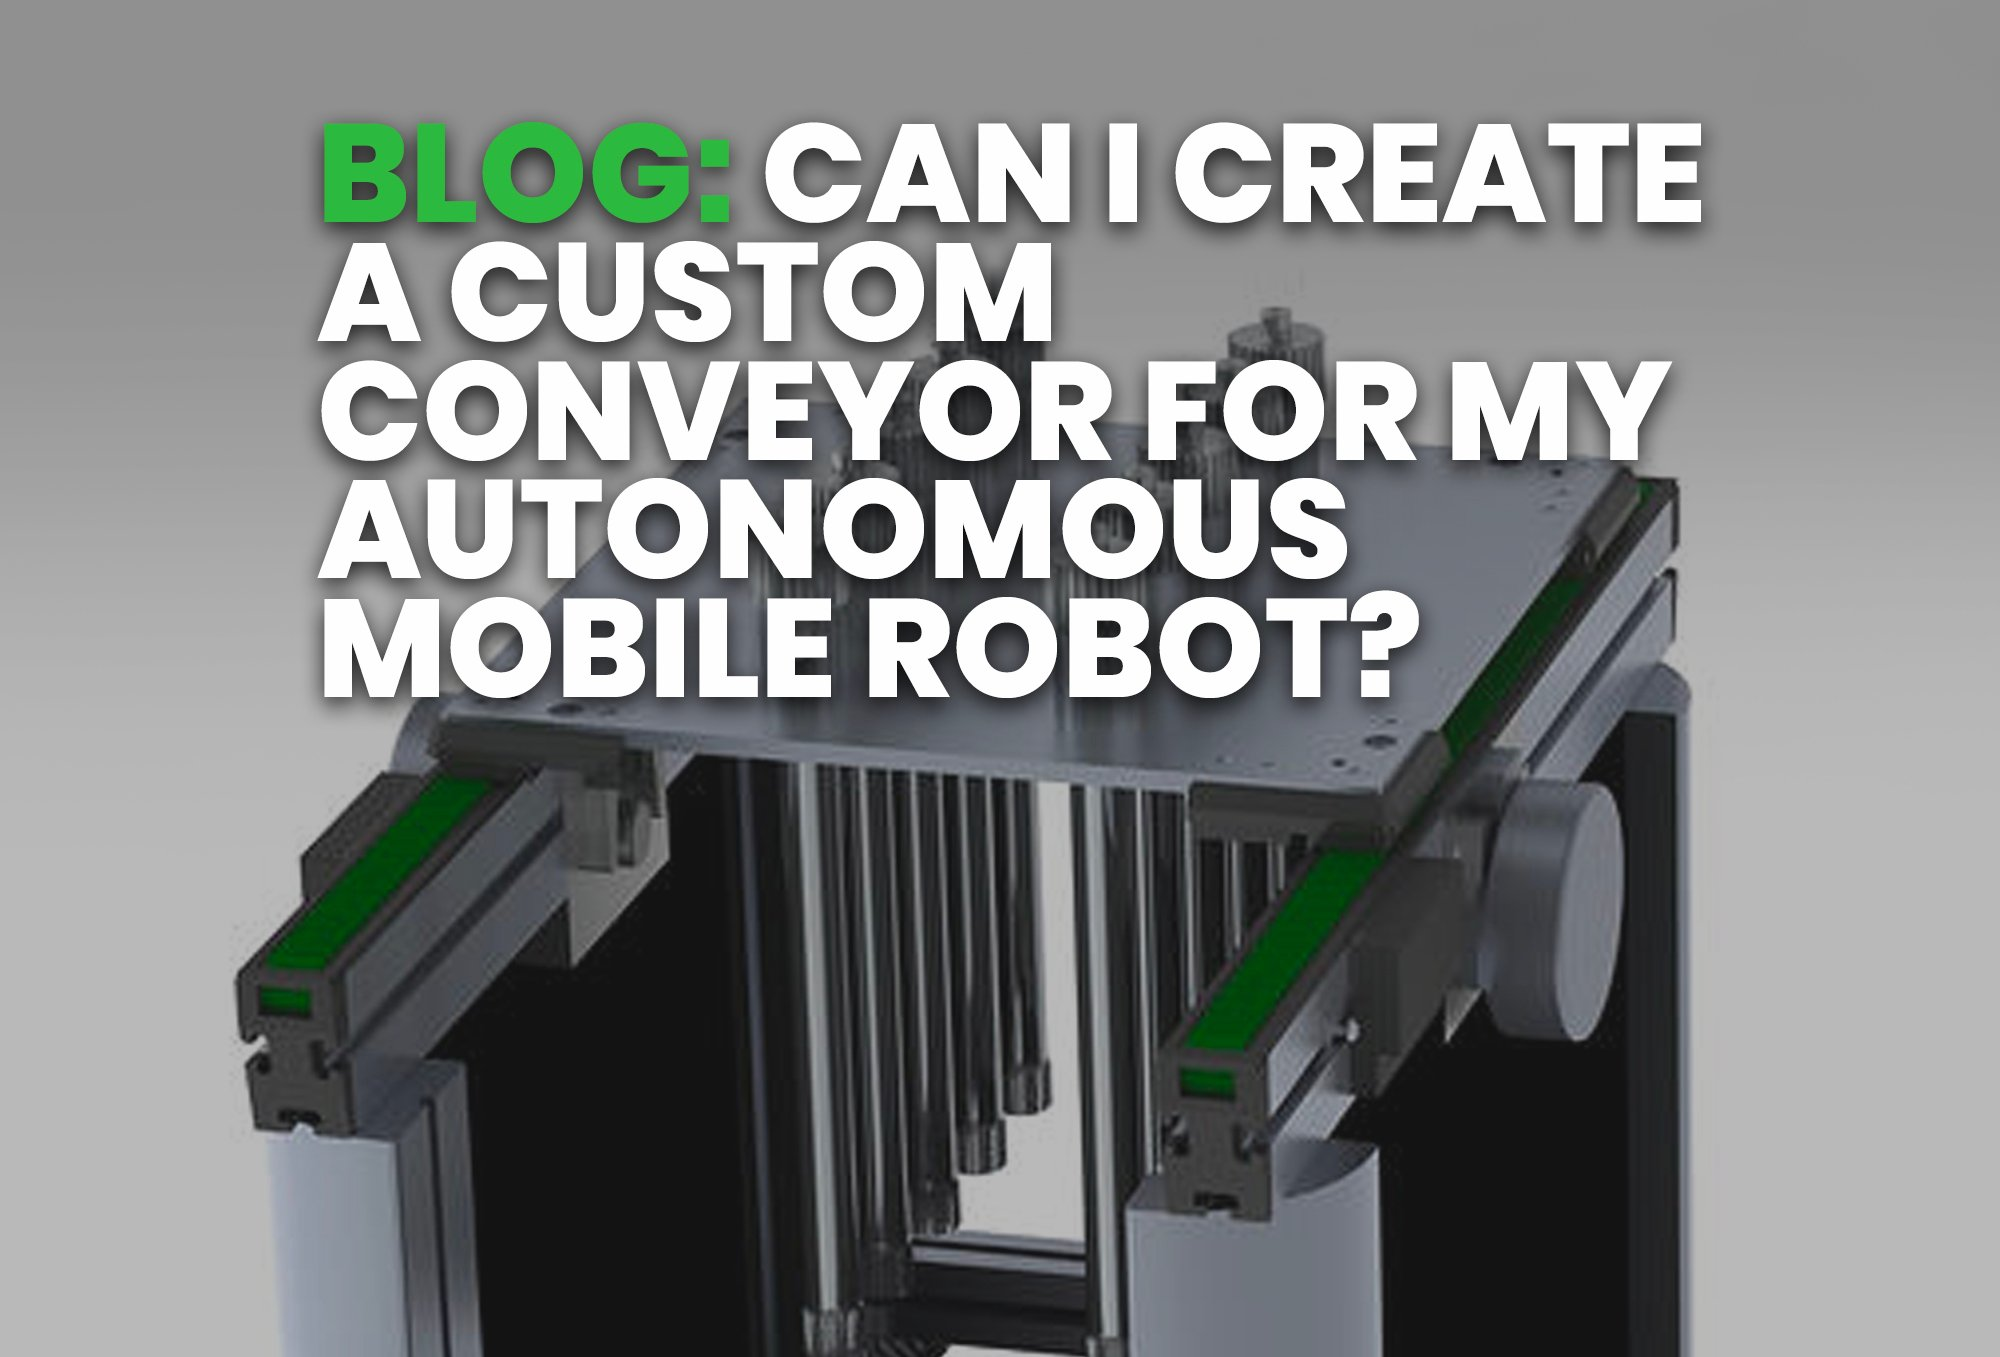 BLOG- Can I Create A Custom Conveyor For My Autonomous Mobile Robot?